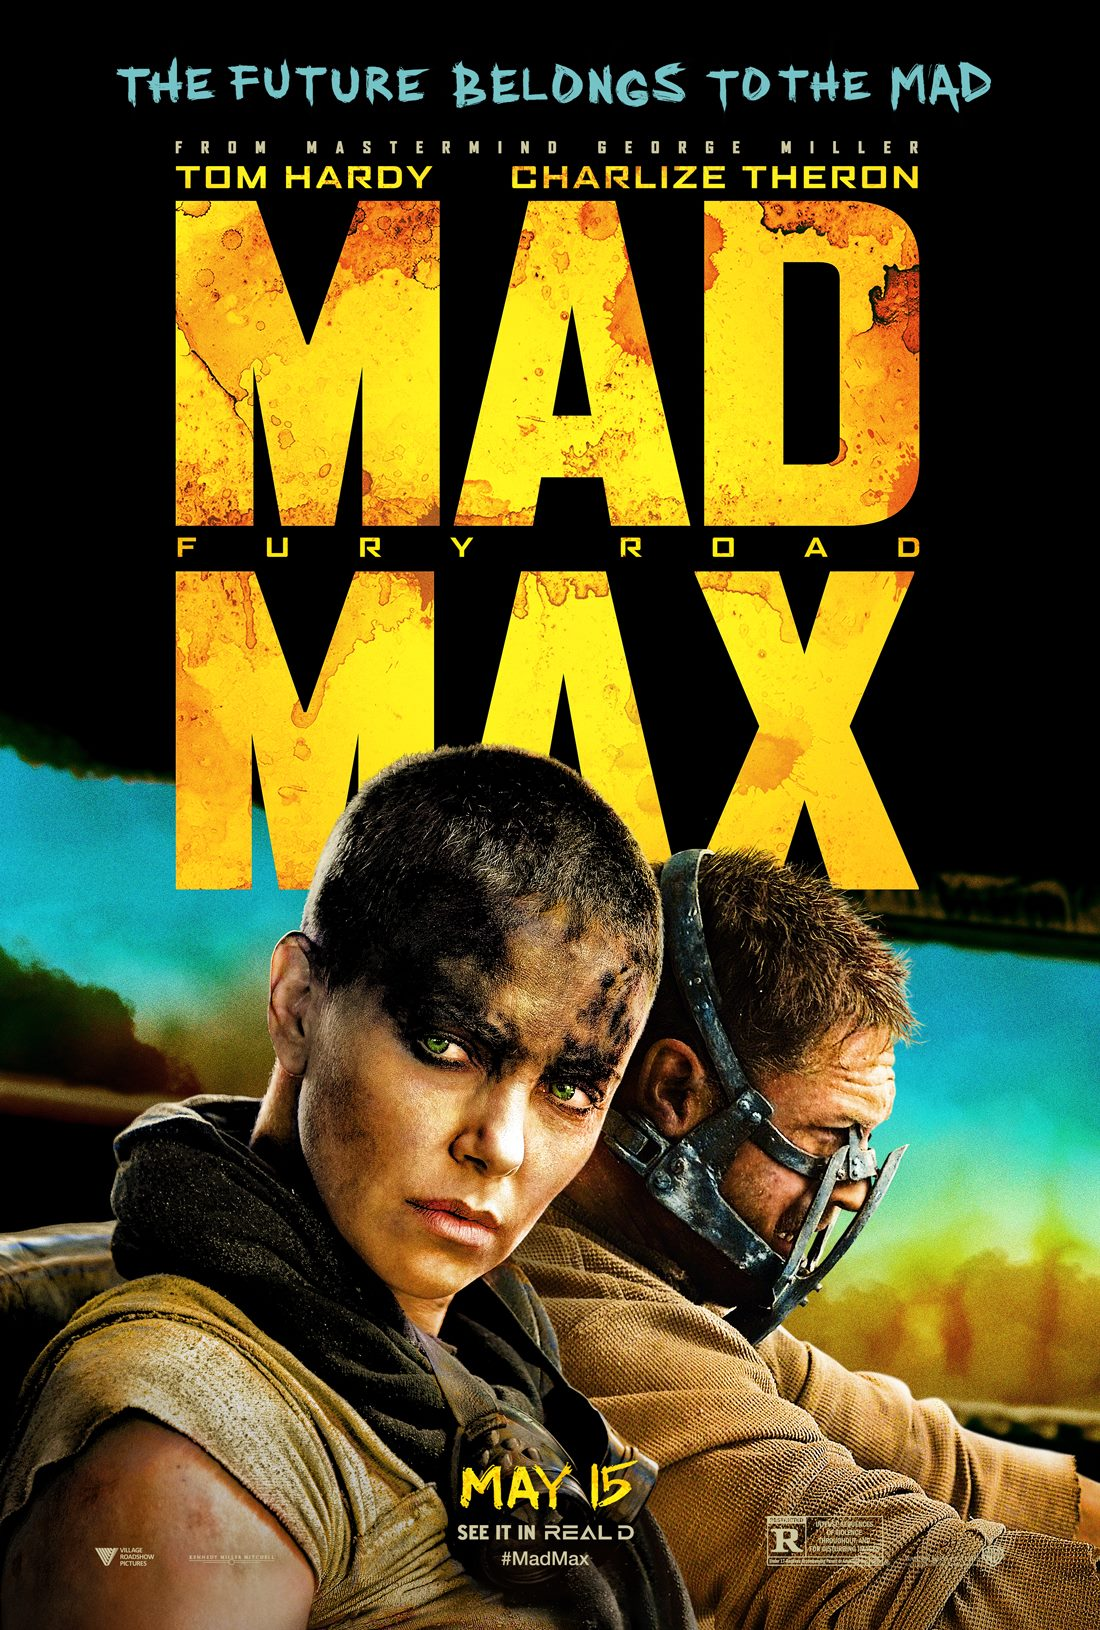 http://cdn3-www.comingsoon.net/assets/uploads/gallery/mad-max-fury-road-1406144100/